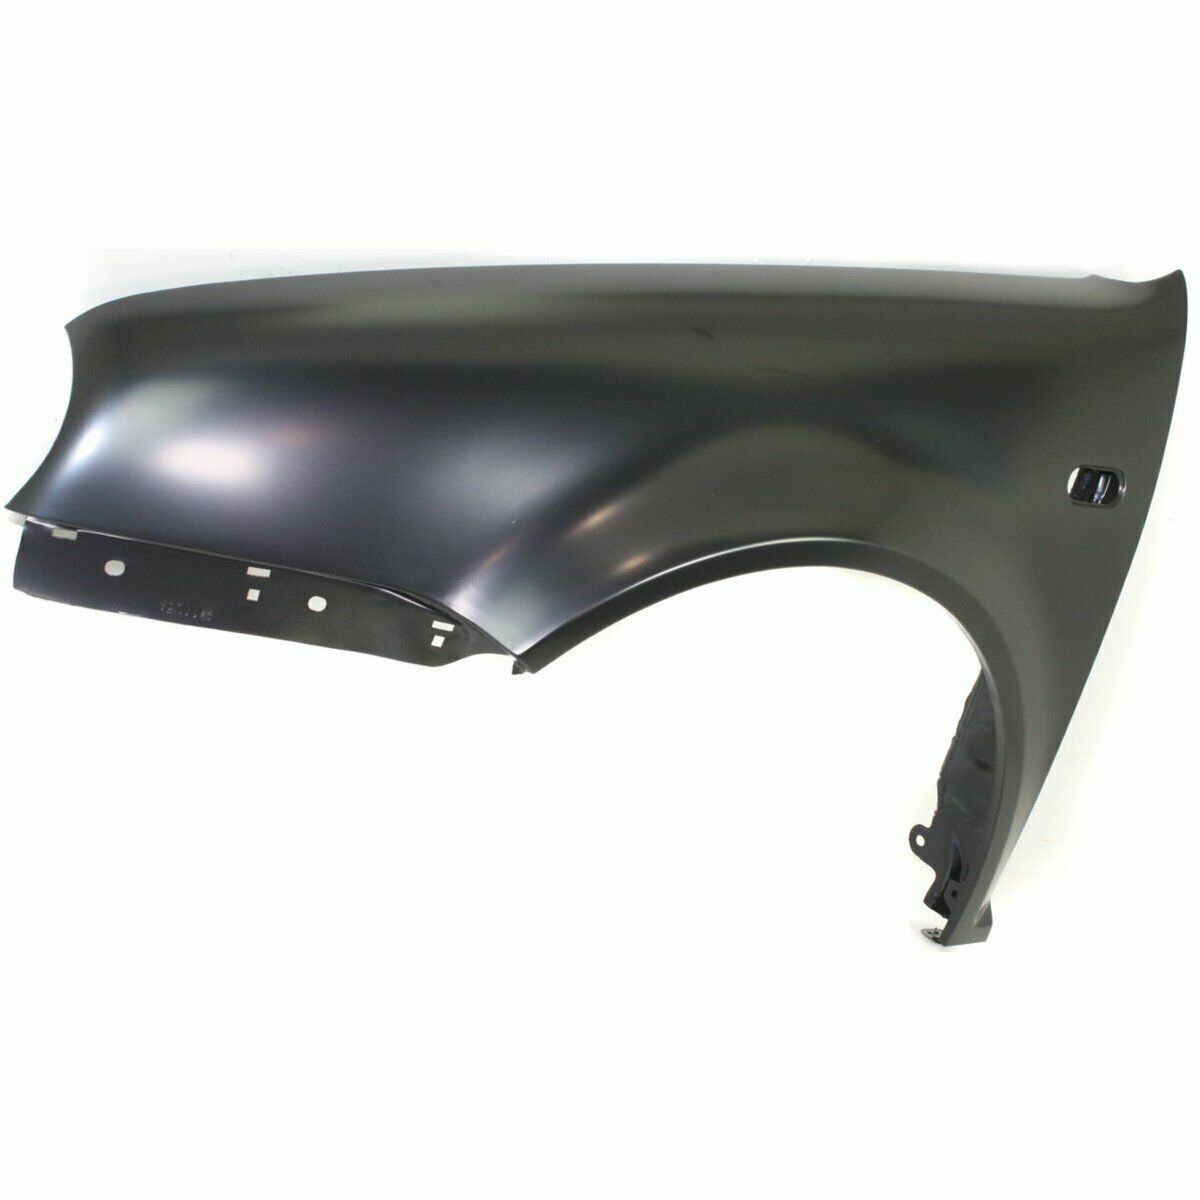 2005-2006 Volkswagen Golf GTI w/ Signal Hole Left Fender Painted to Match